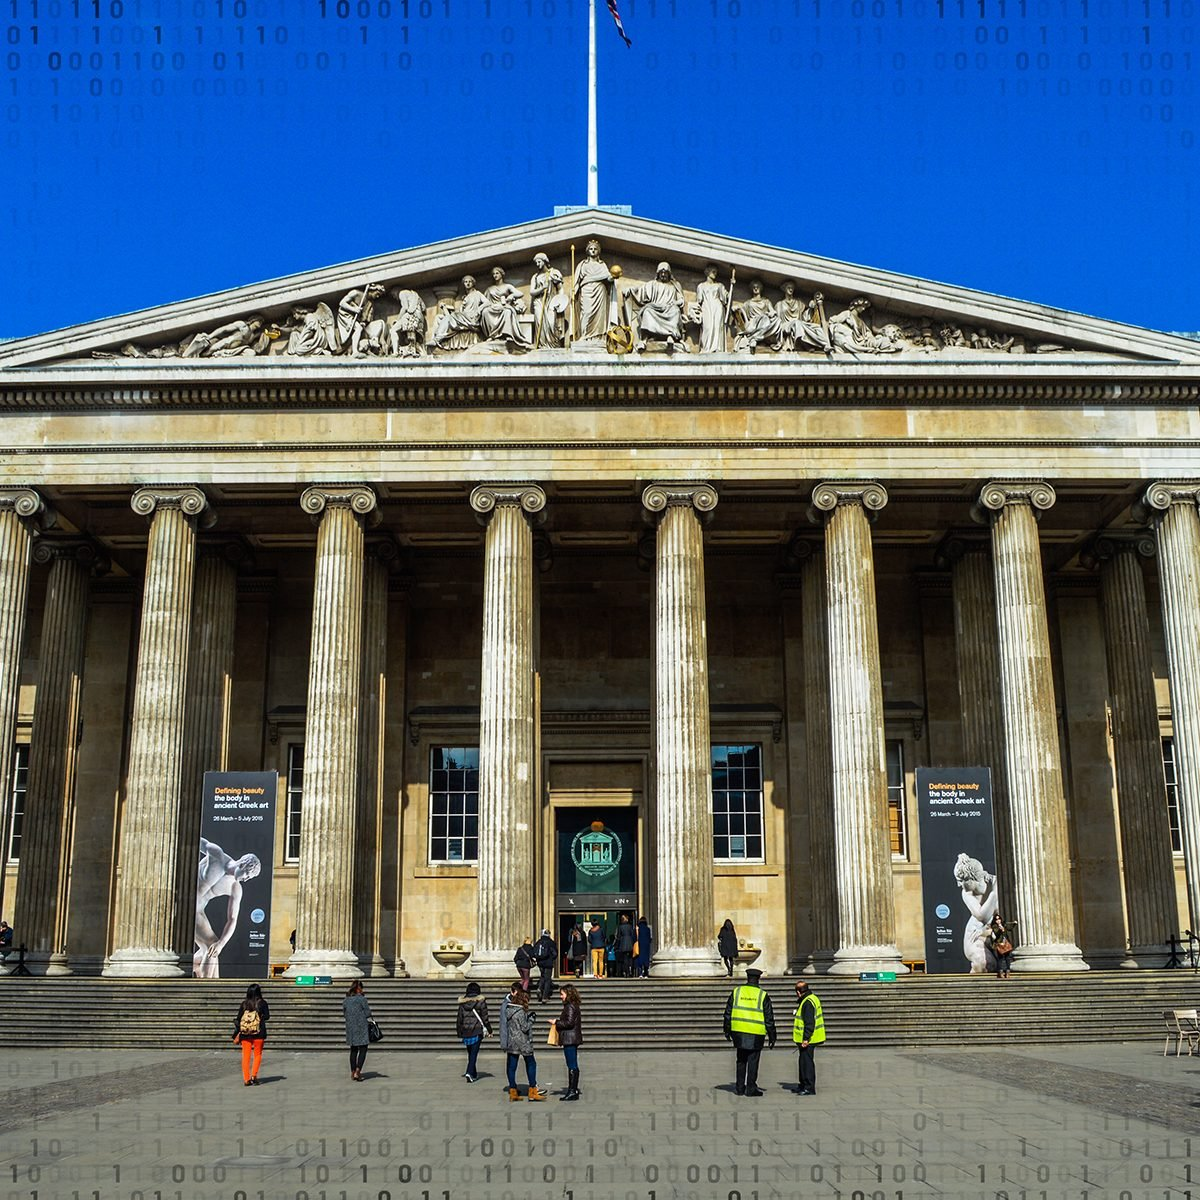 London, UK - March 23, 2015: The British Museum in central London. Photo taken outside and contains several museum-goers.